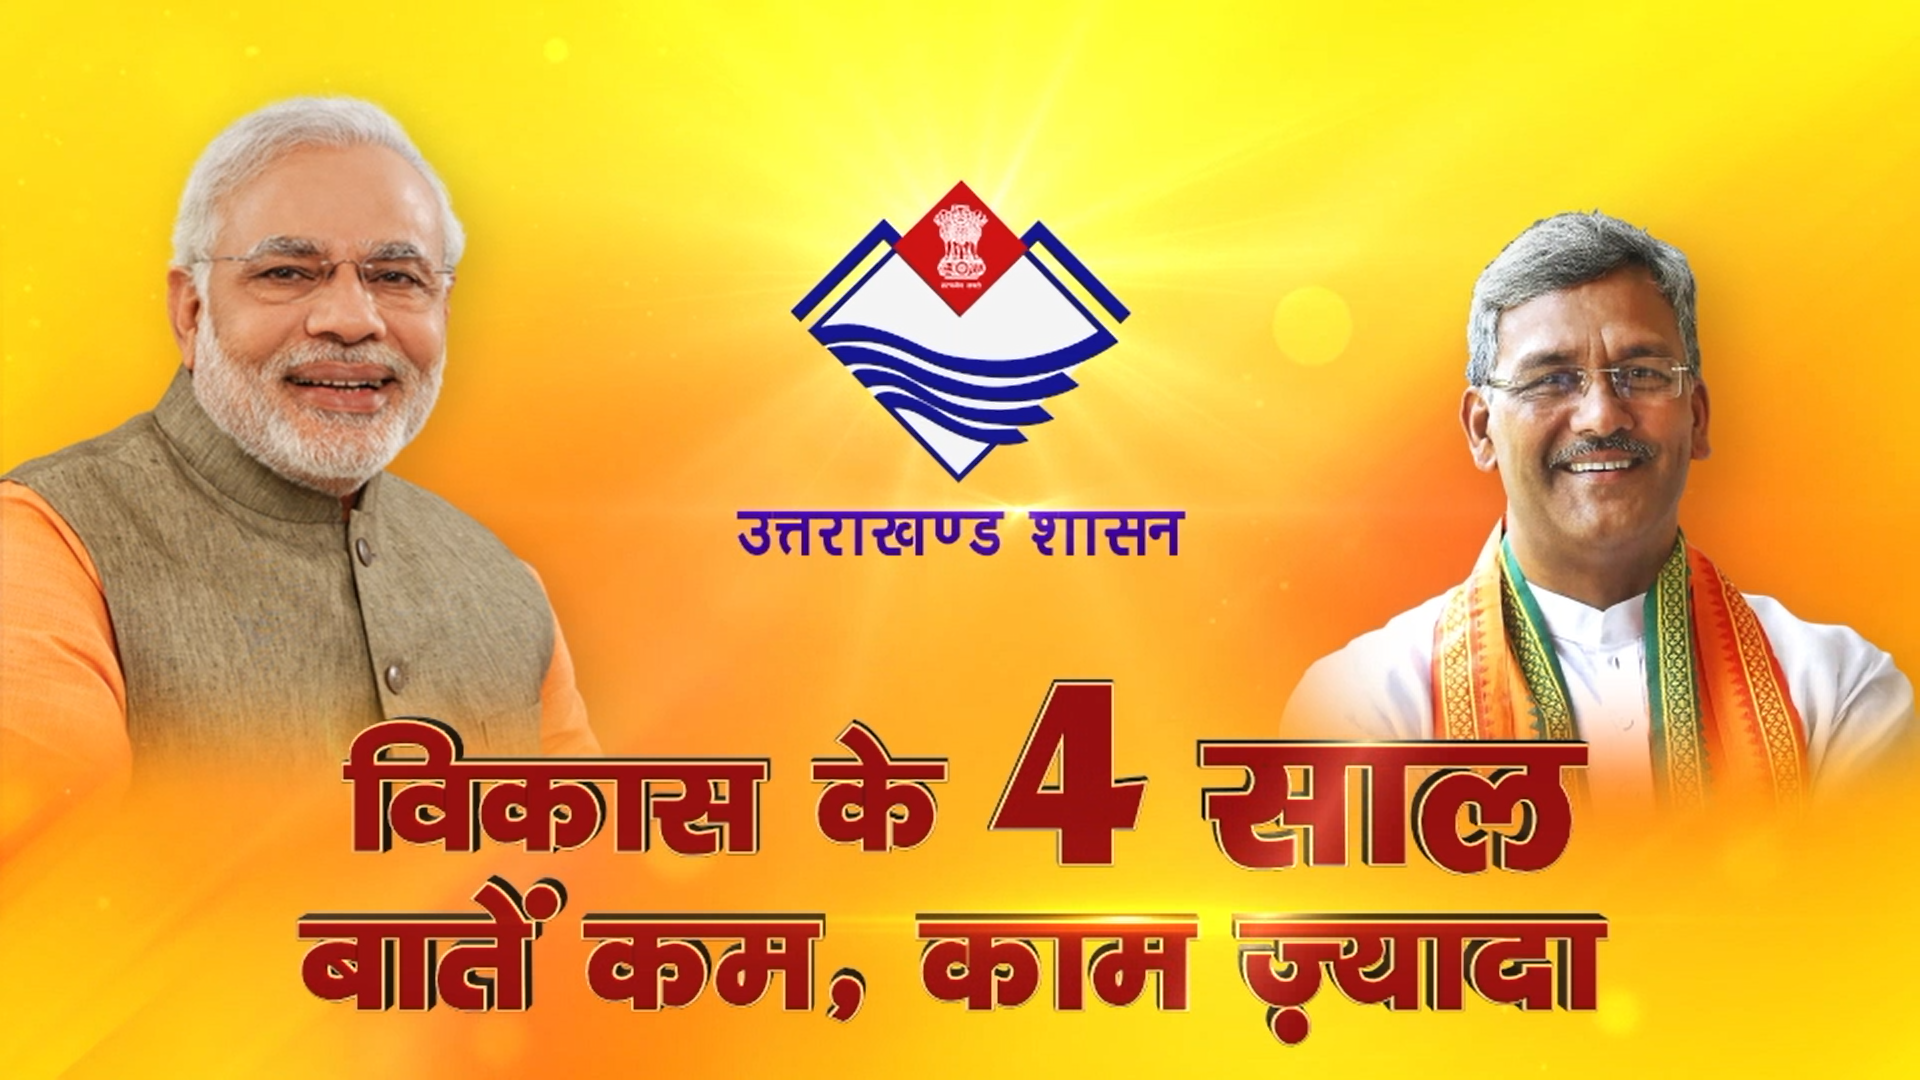 Vikas ke 4 saal - video 1